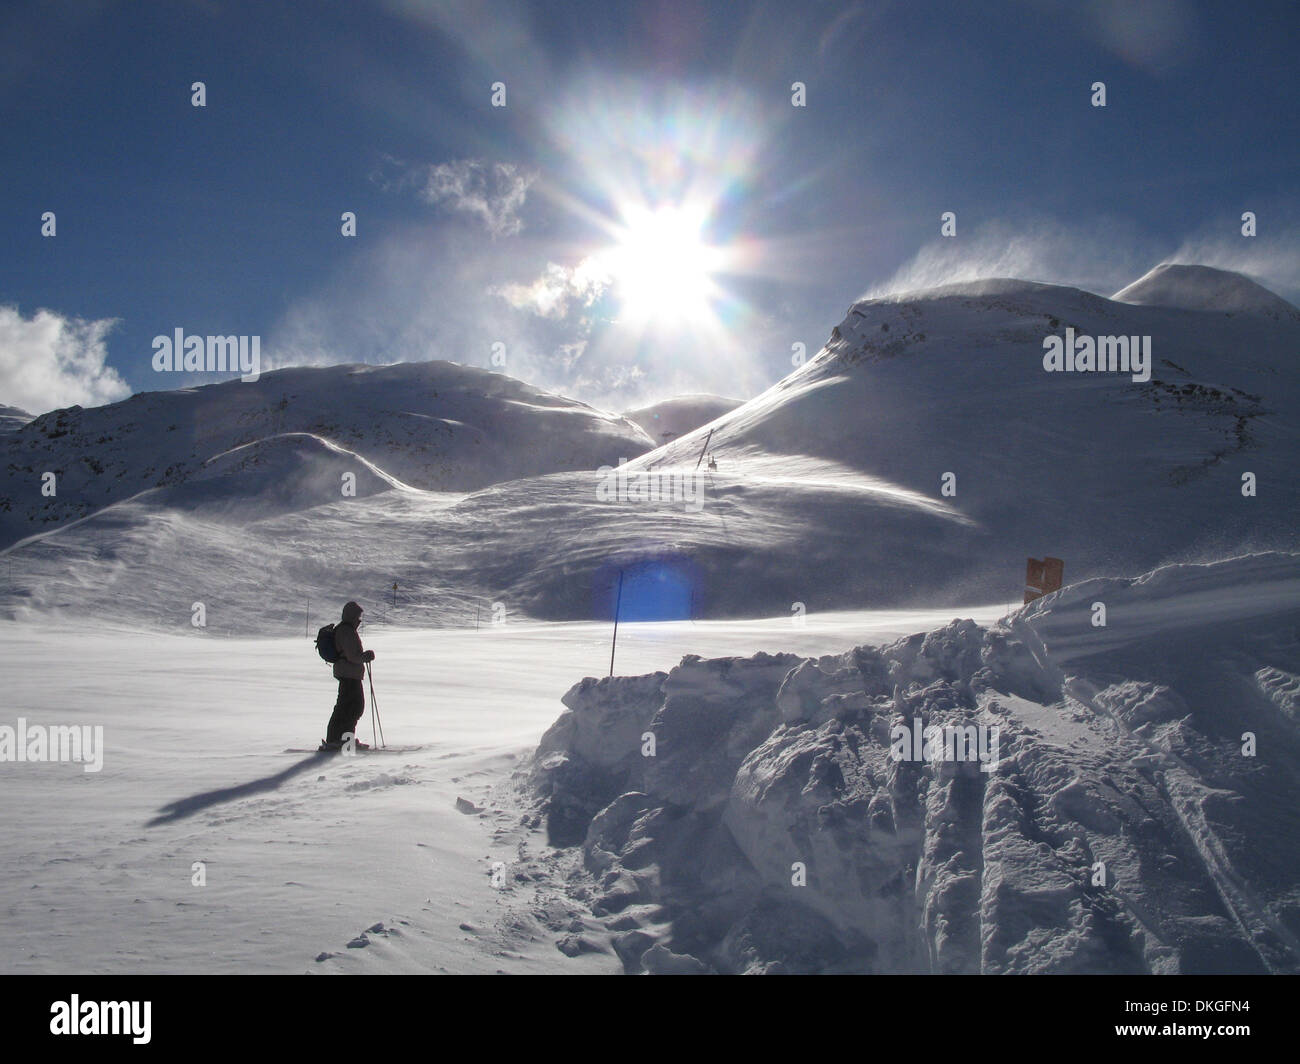 skier on a windblown snow covered piste under blue sky - Stock Image